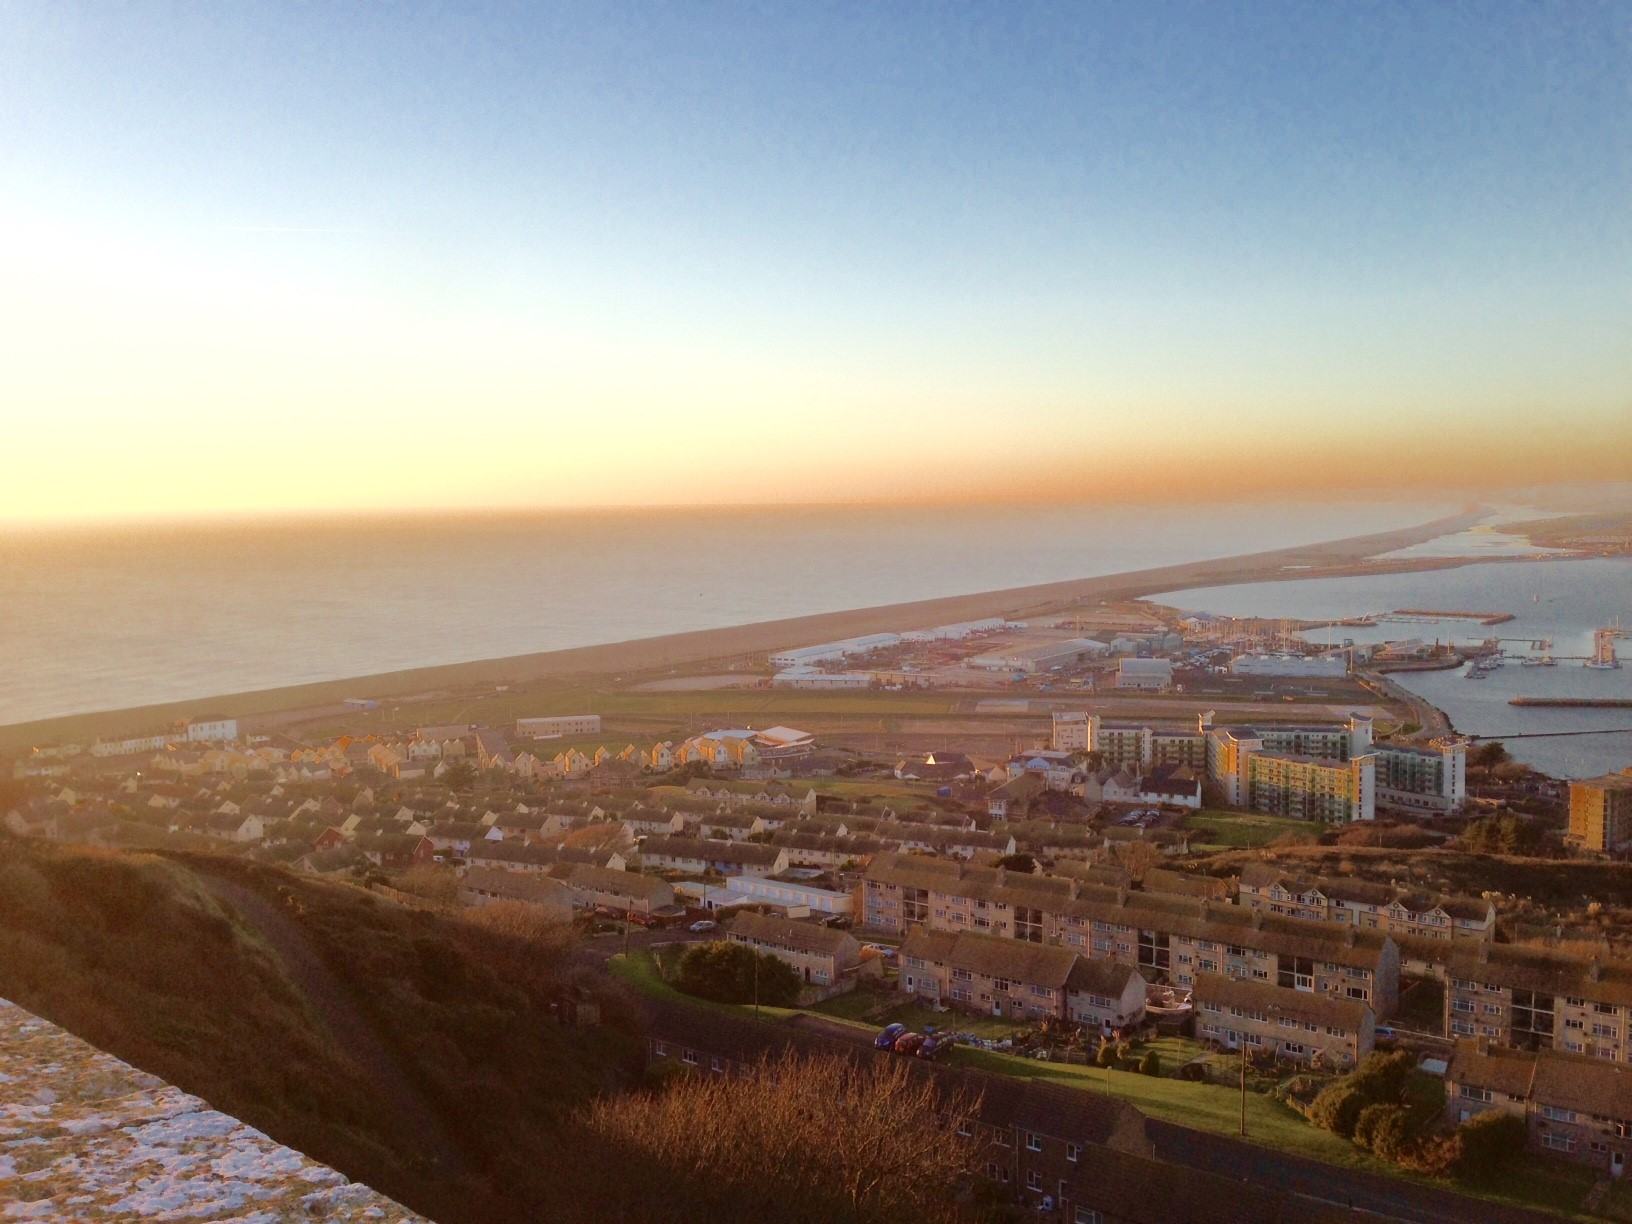 The view from the top of Portland Hill overlooking Chesil Beach and Weymouth in the distance.